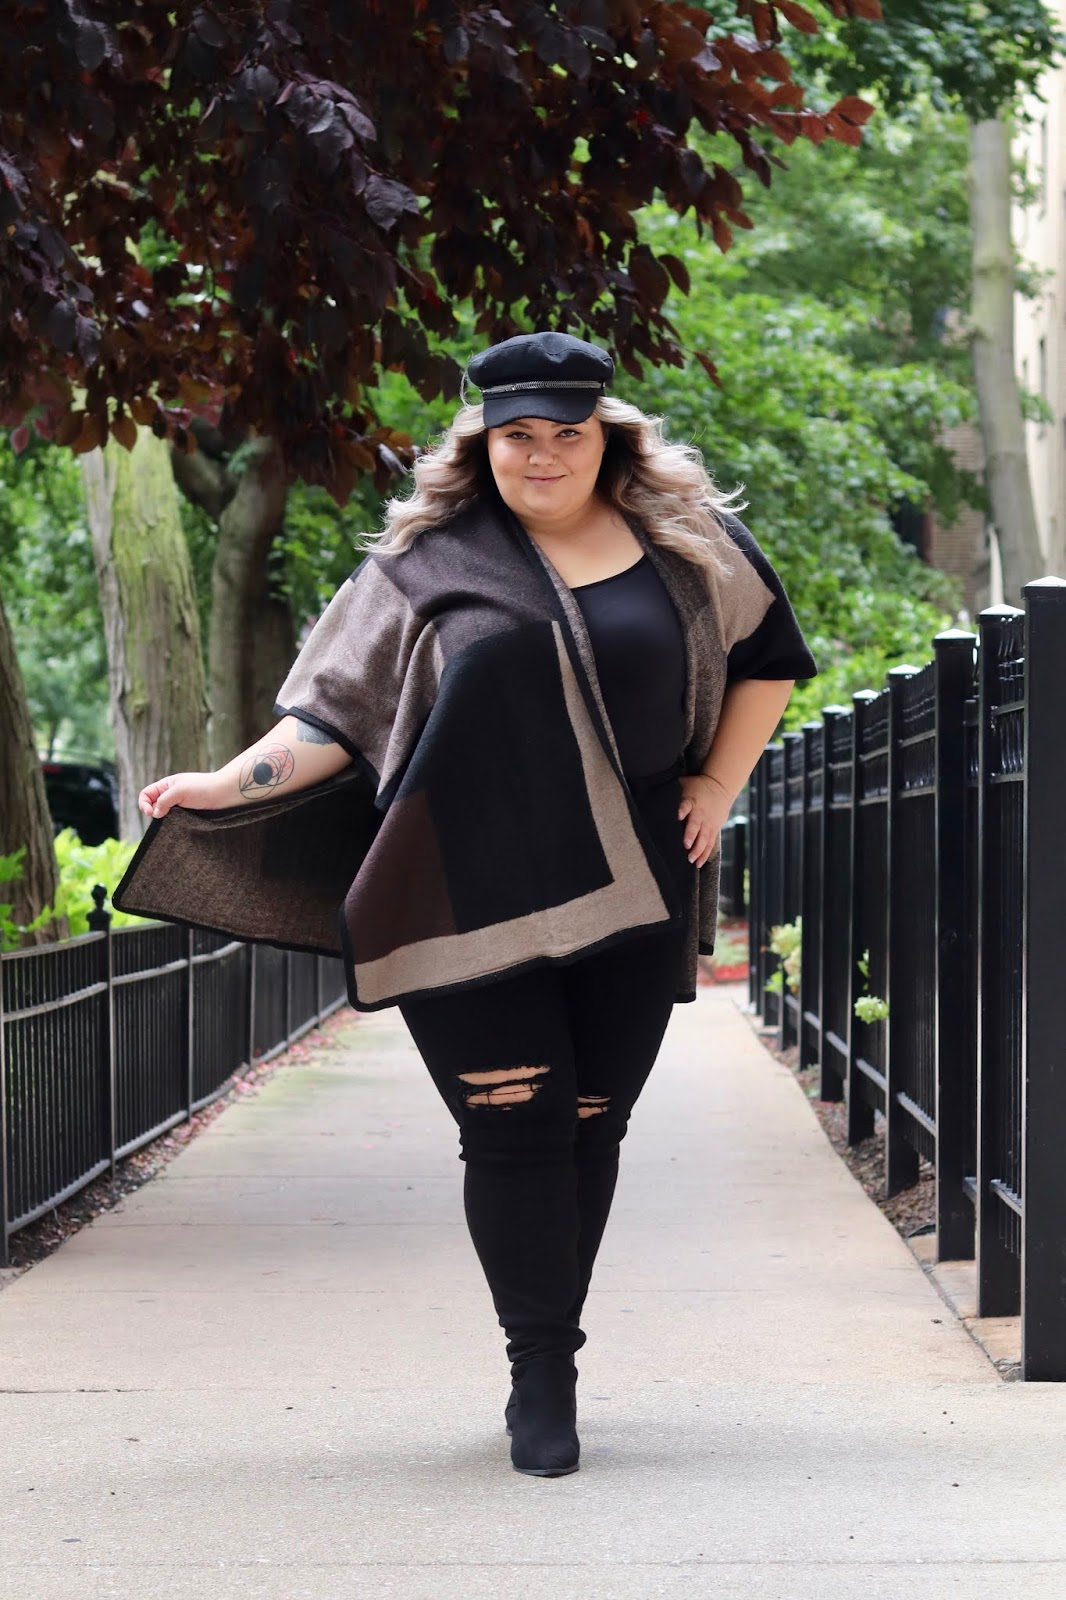 Chicago Plus Size Petite Fashion Blogger, influencer, YouTuber, and model Natalie Craig, of Natalie in the City, rocks sweaters and fall fashion from Gordmans, an off-price retailer.